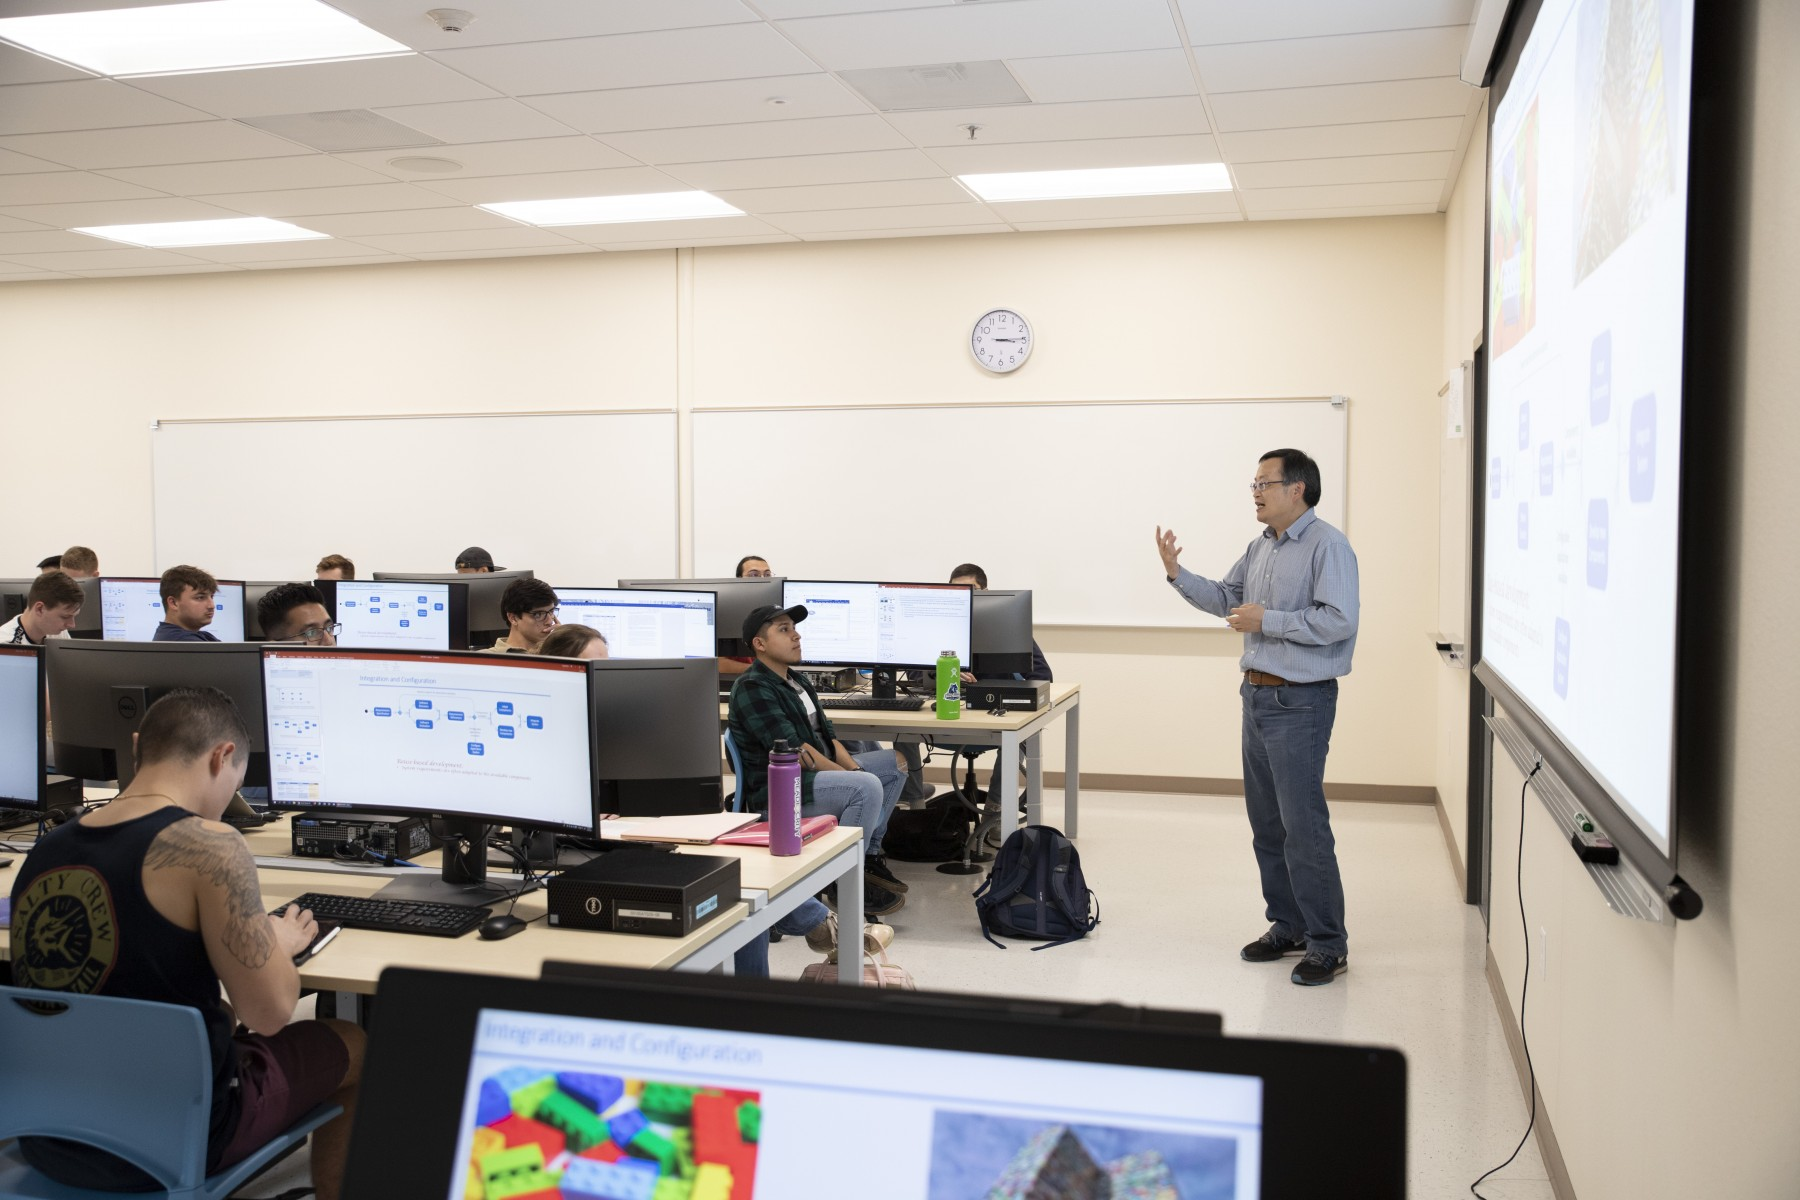 Professor Simon Fan is a driving force in developing curriculum for CSUSM's software engineering program. Photo by Andrew Reed